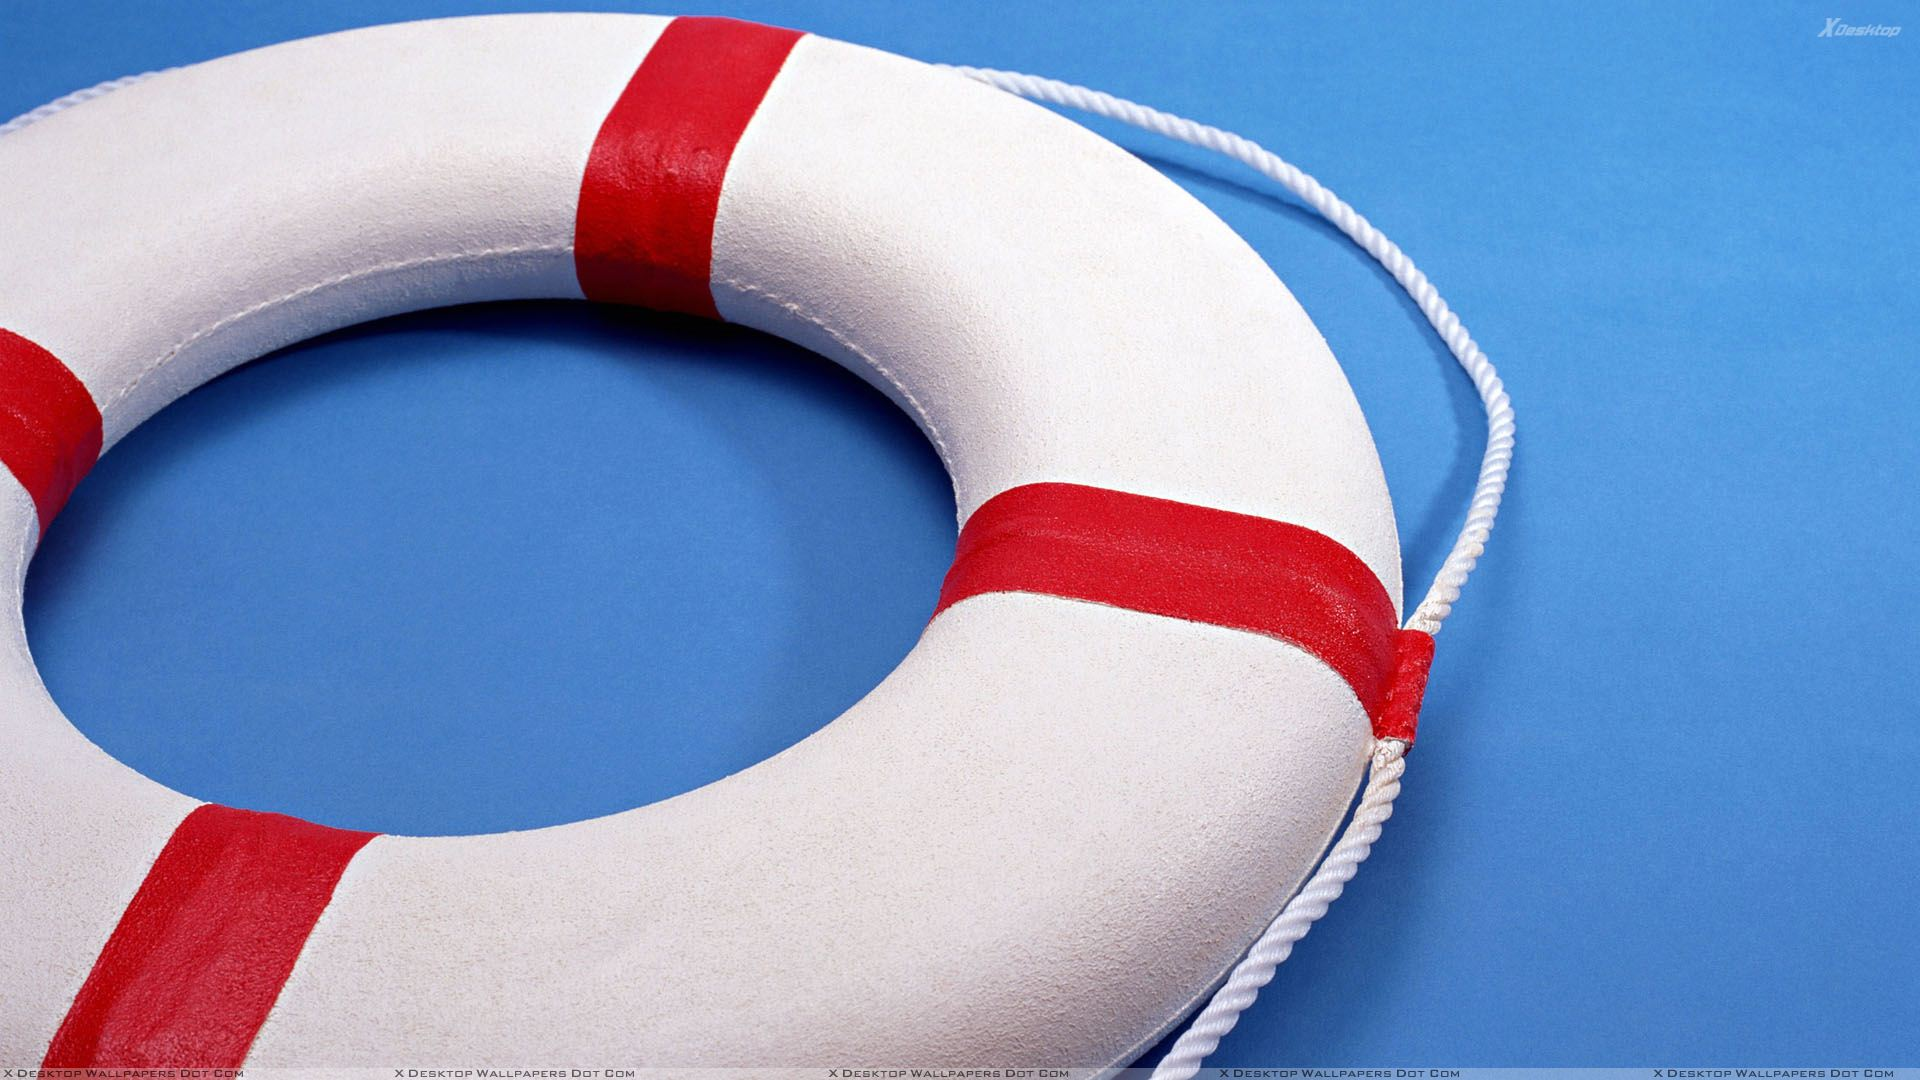 White Lifeboat On Blue Background